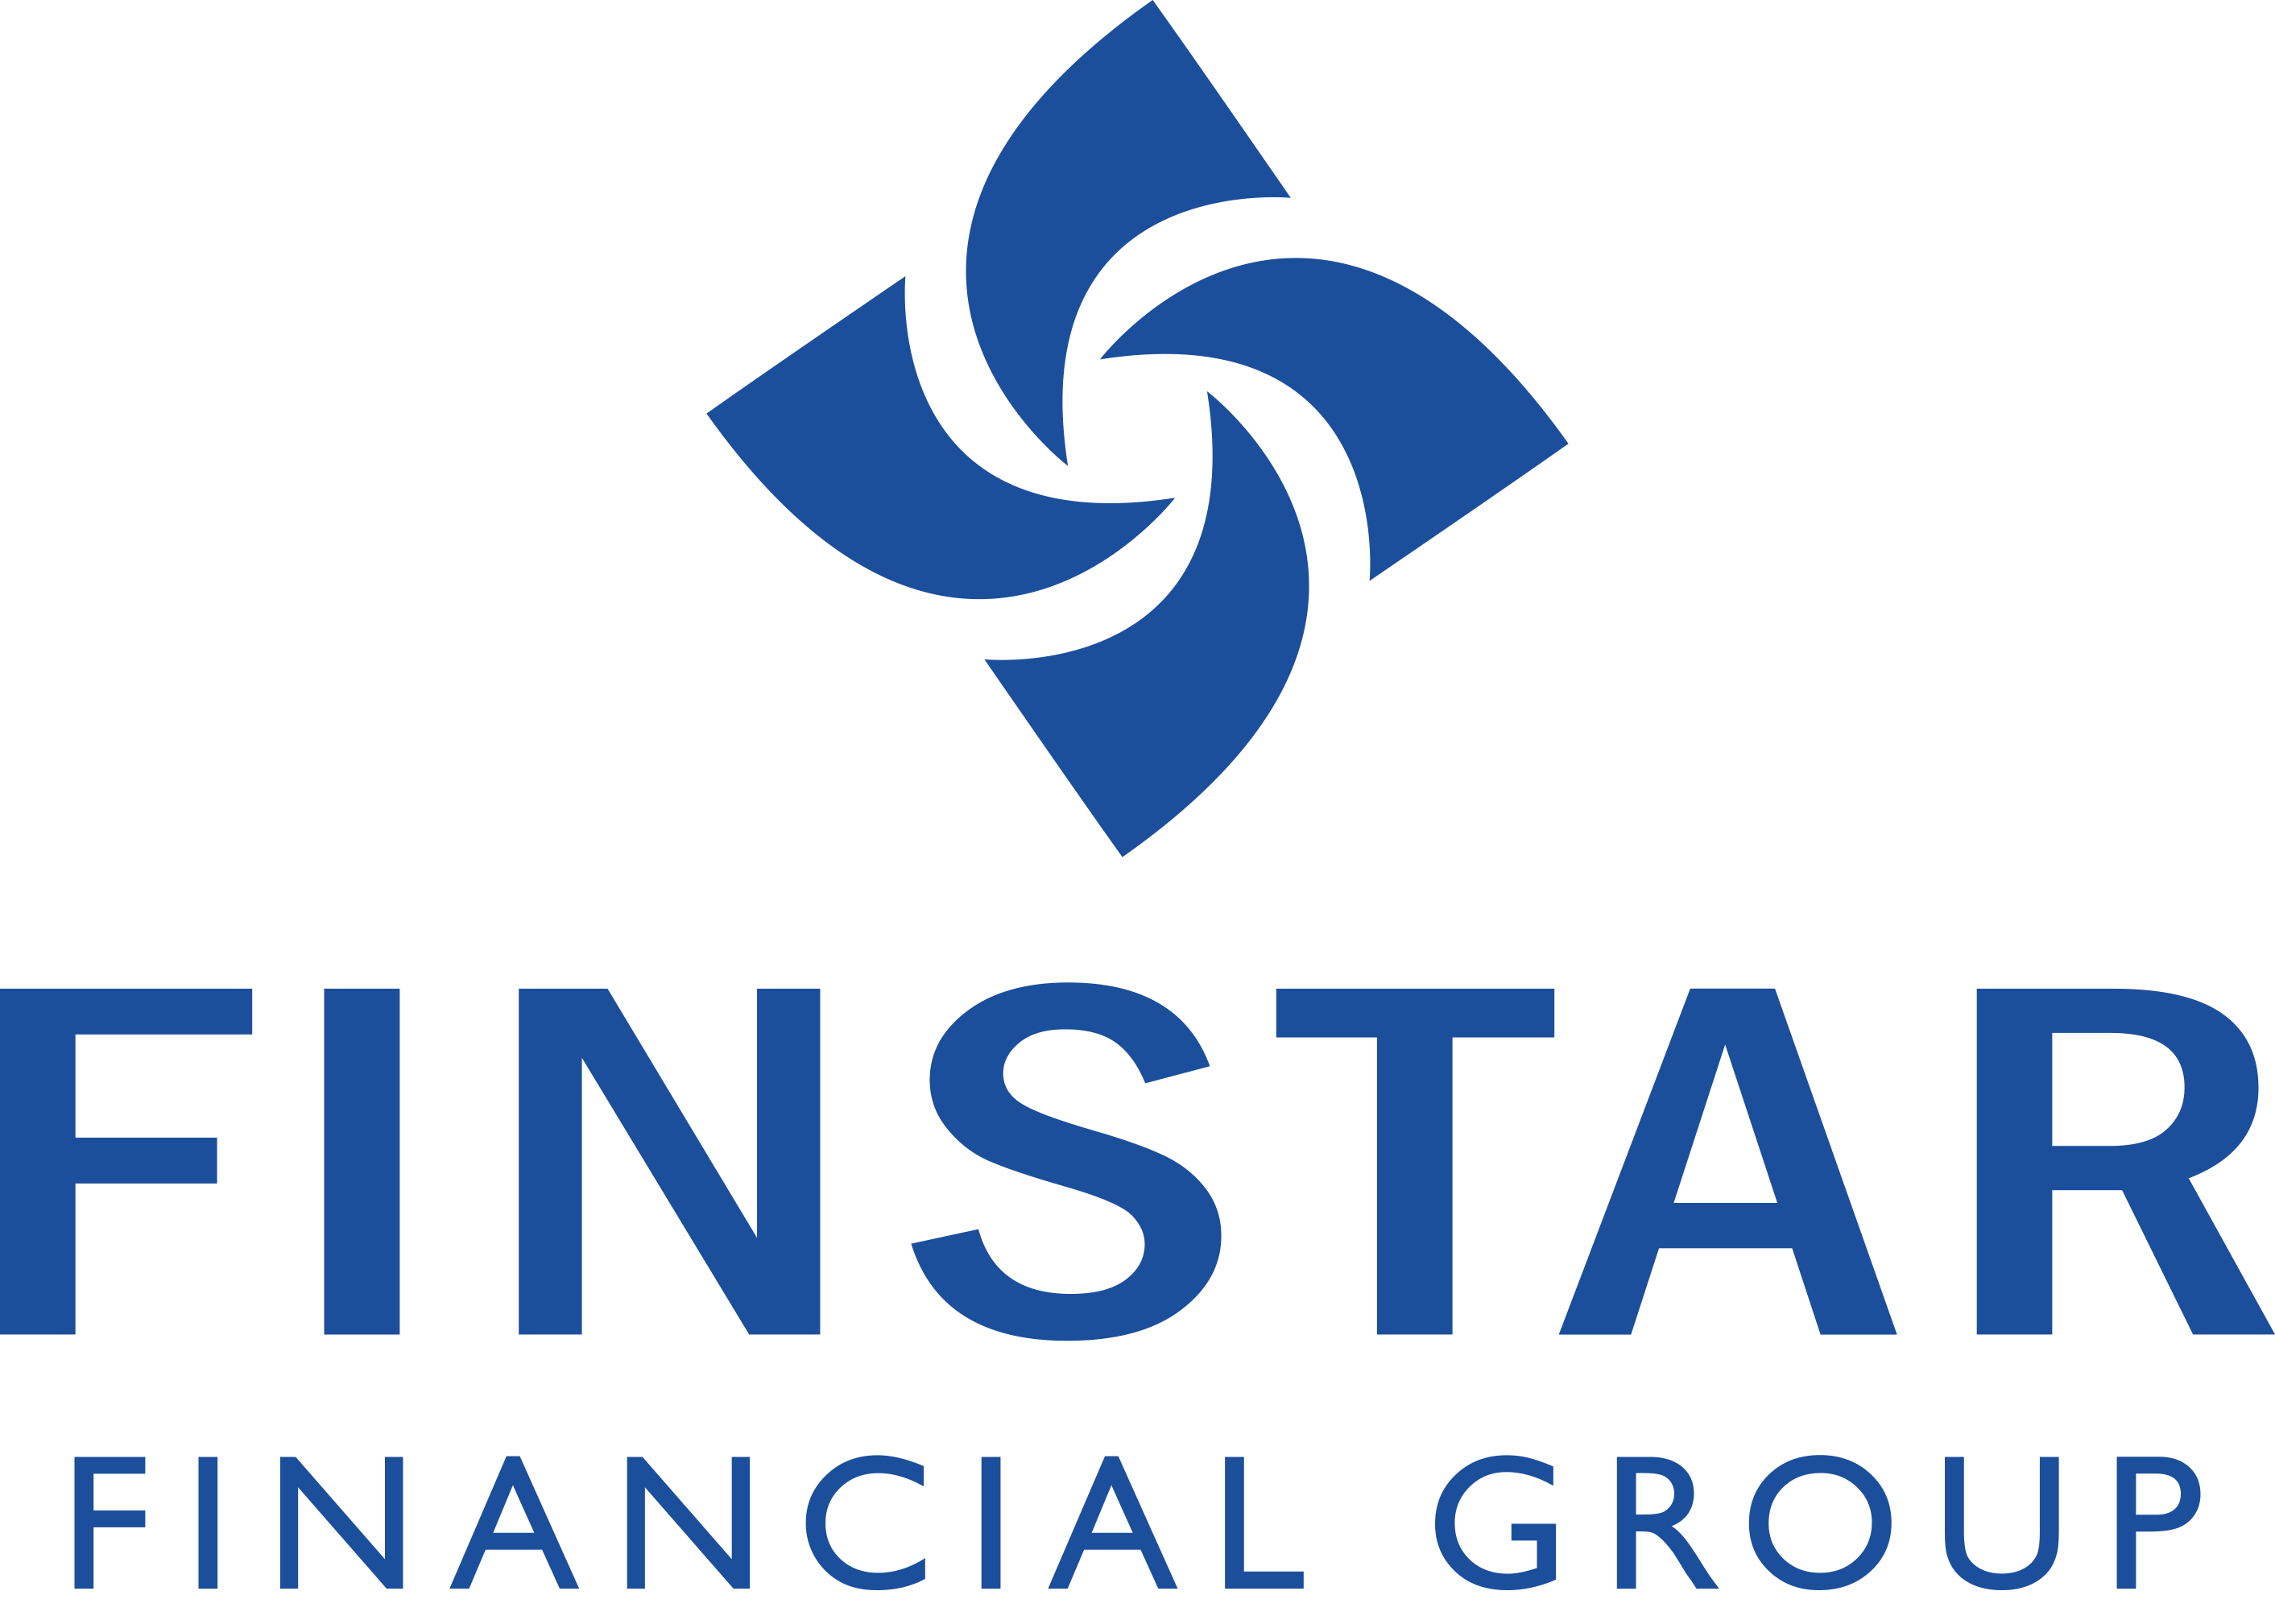 Finstar Financial Group